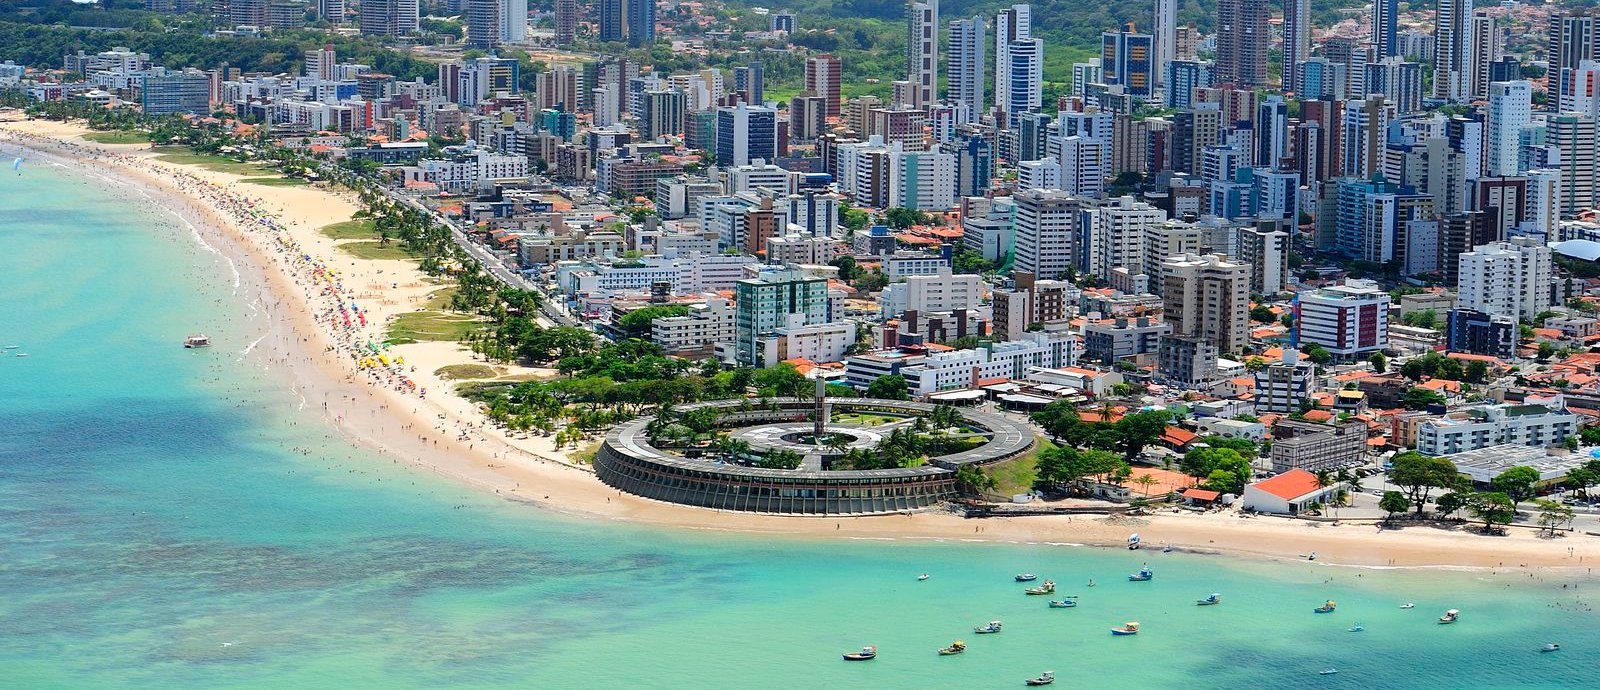 Paraíba segue como estado mais competitivo do Nordeste